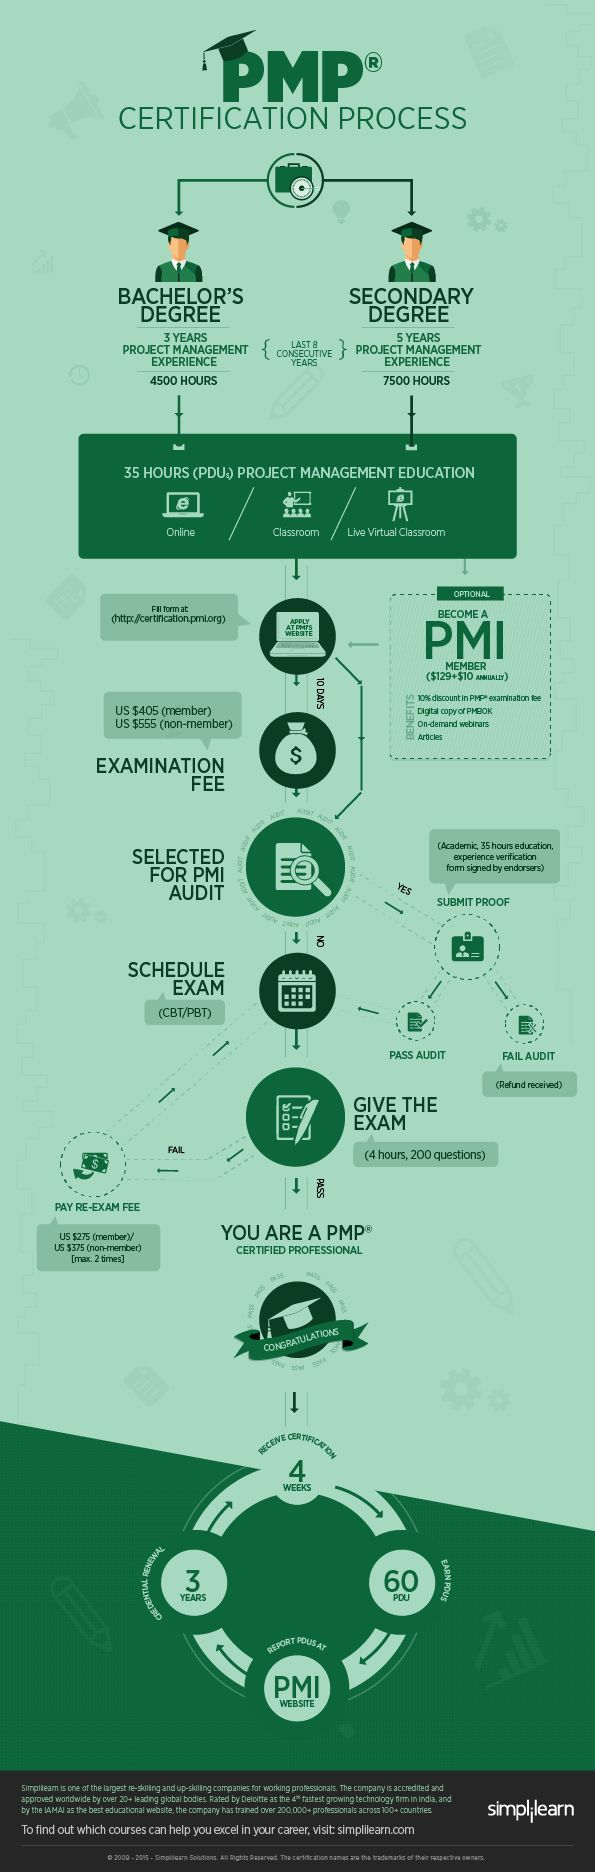 Here's your step-by-step roadmap to #PMP Certification [infographic]